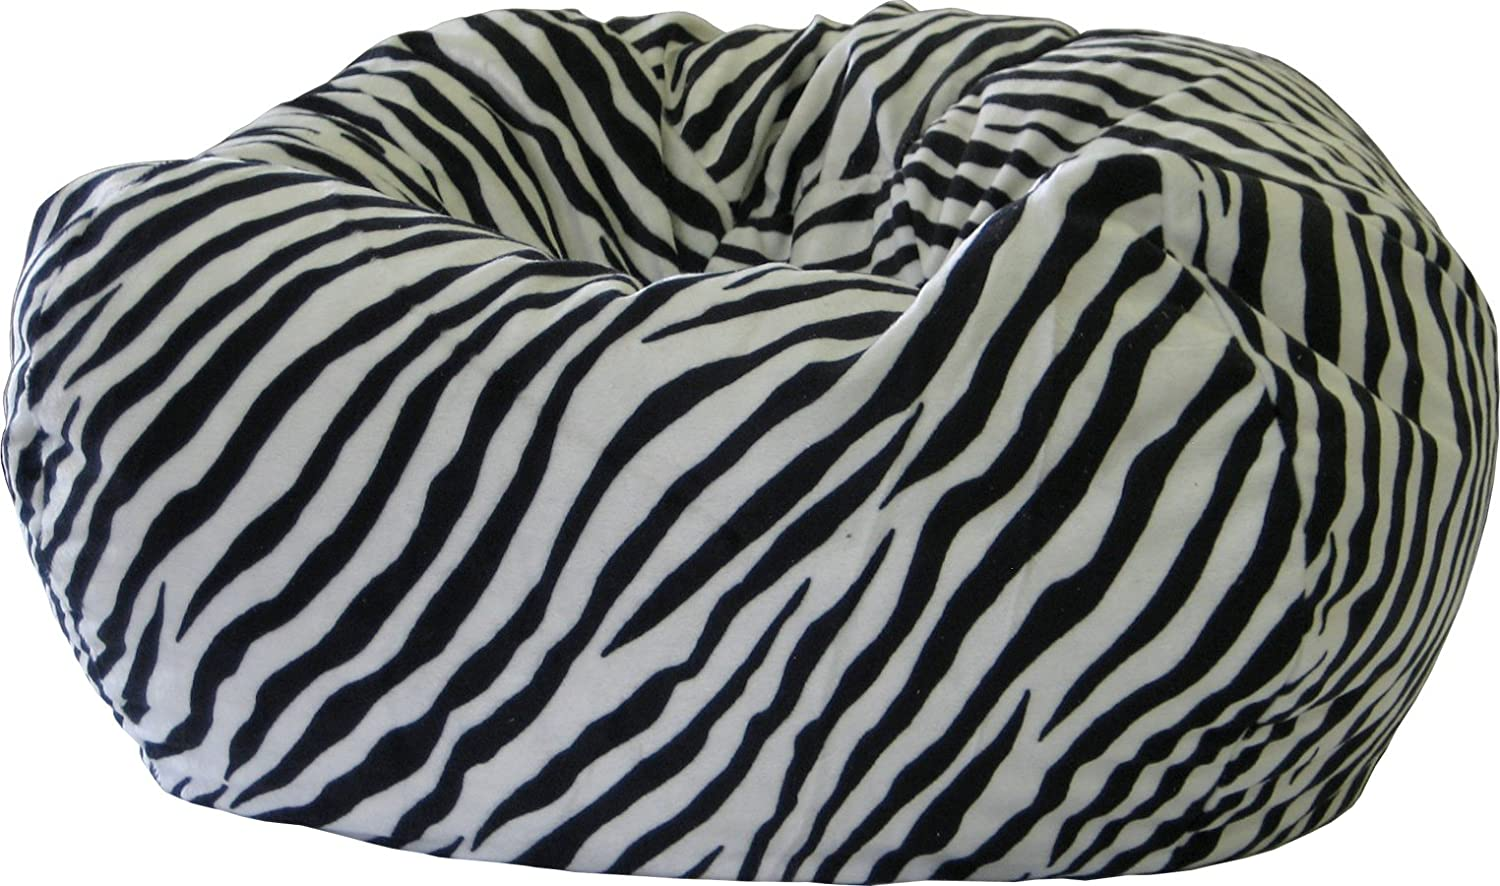 Superbe Amazon.com: Gold Medal Bean Bags 30014068813 XX Large Fuzze Suede Bean Bag, Cheetah  Print: Kitchen U0026 Dining